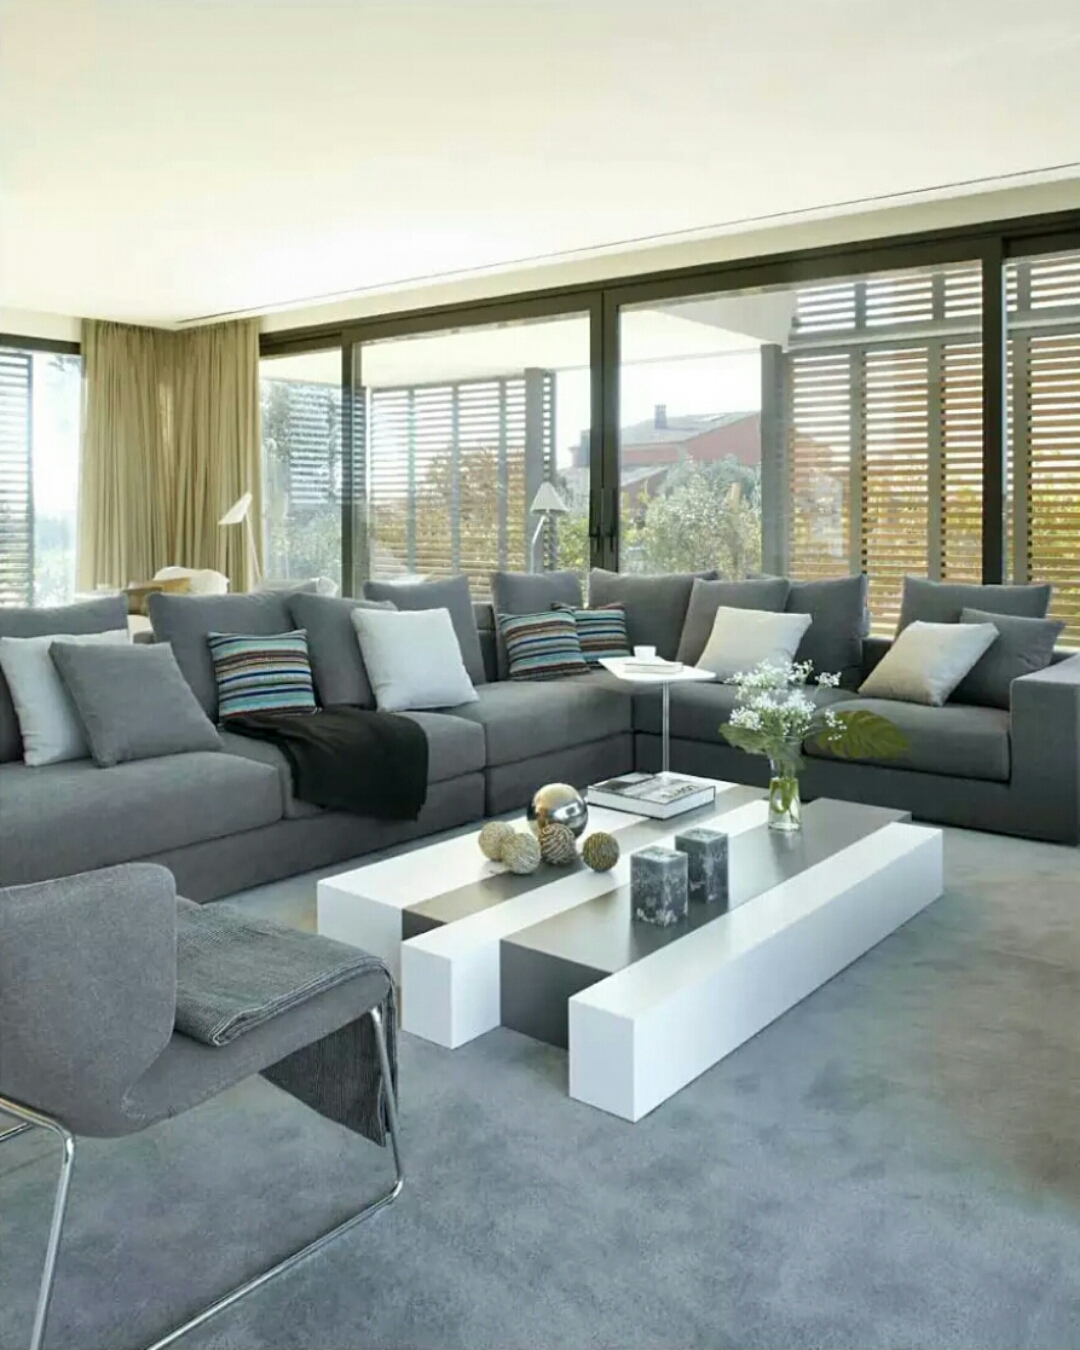 Are you looking for best elegant and inspirational living room design? Here are some elegant living room models pictures with open apace, right combination of furniture to make you more comfortable and inspired. Explore images below.